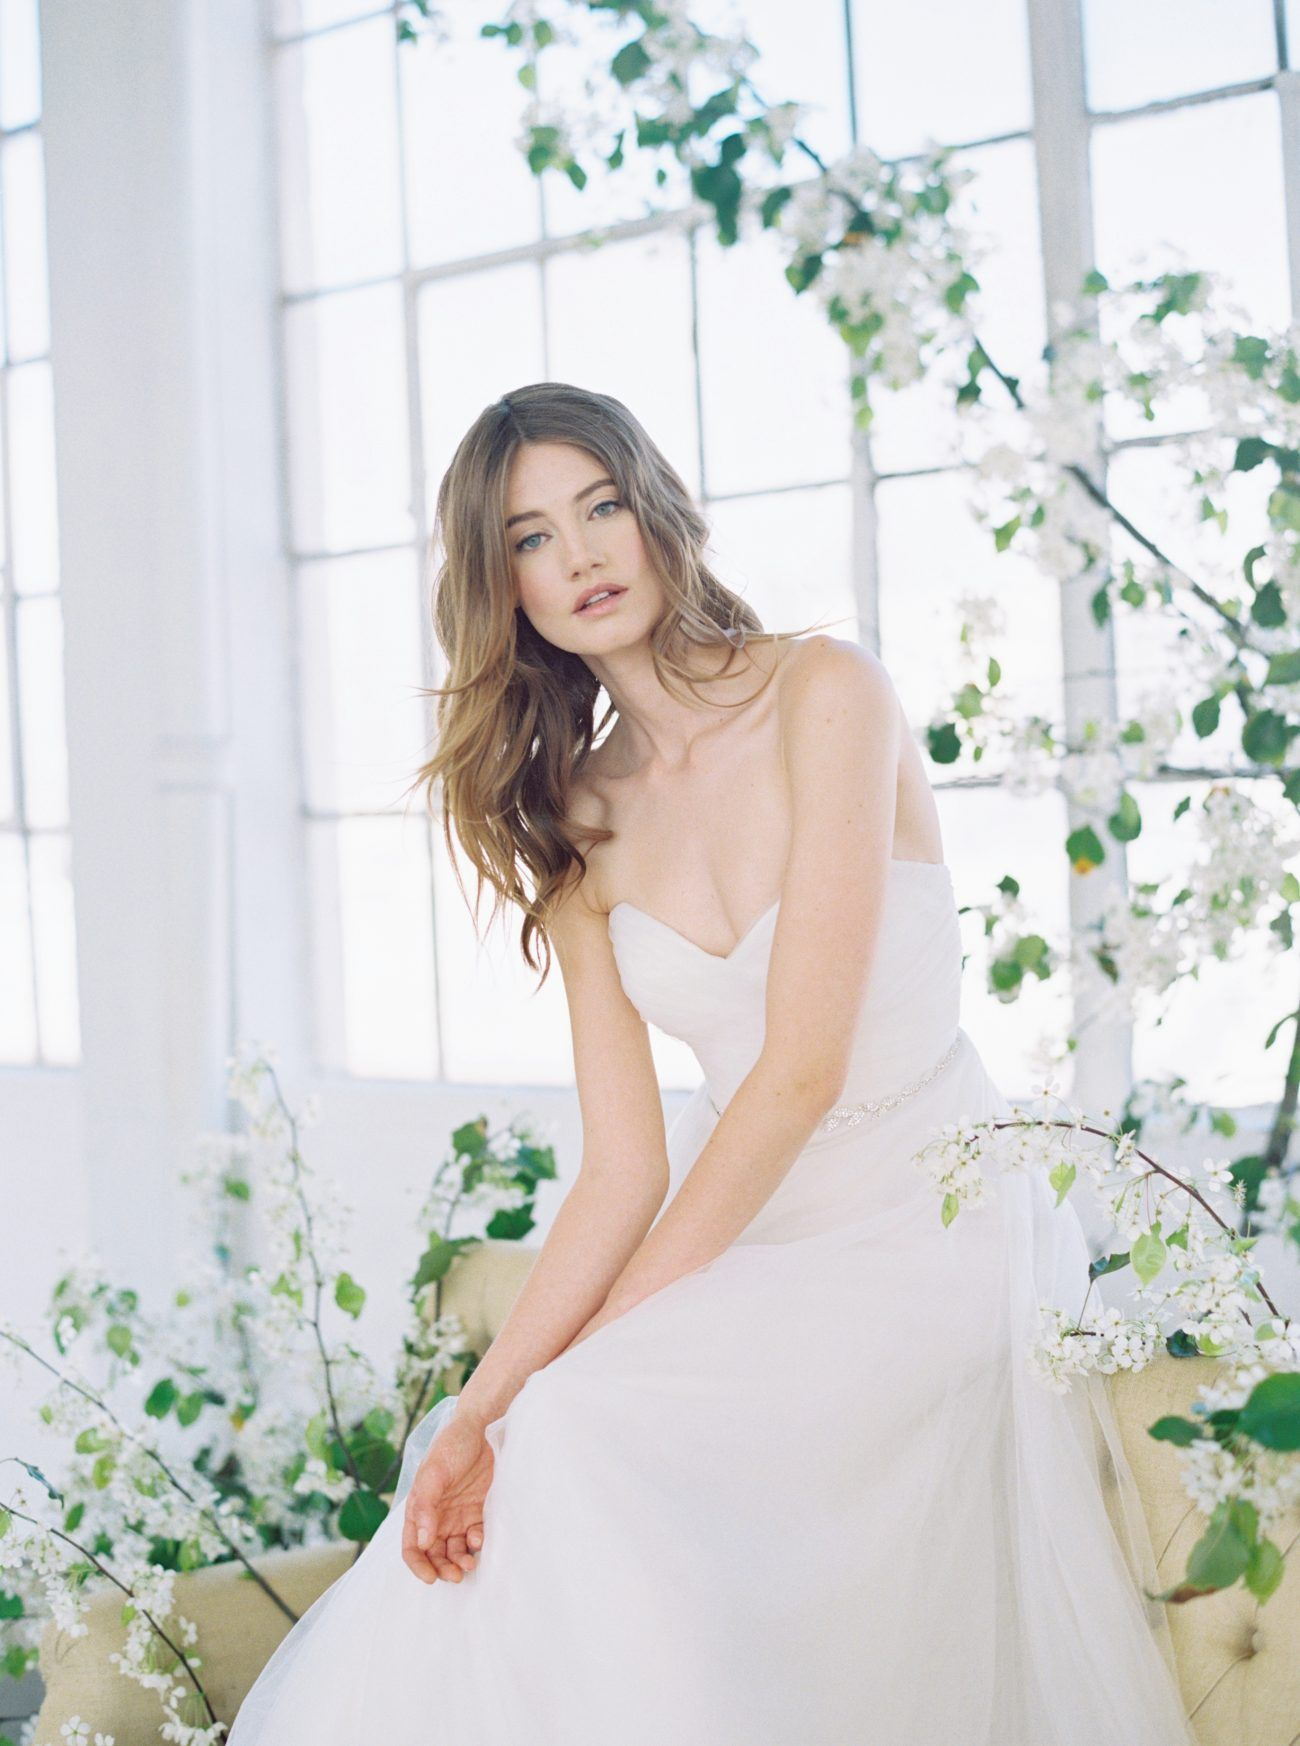 Effortlessly Stylish Bridal and Bridesmaid Gowns from Jenny Yoo